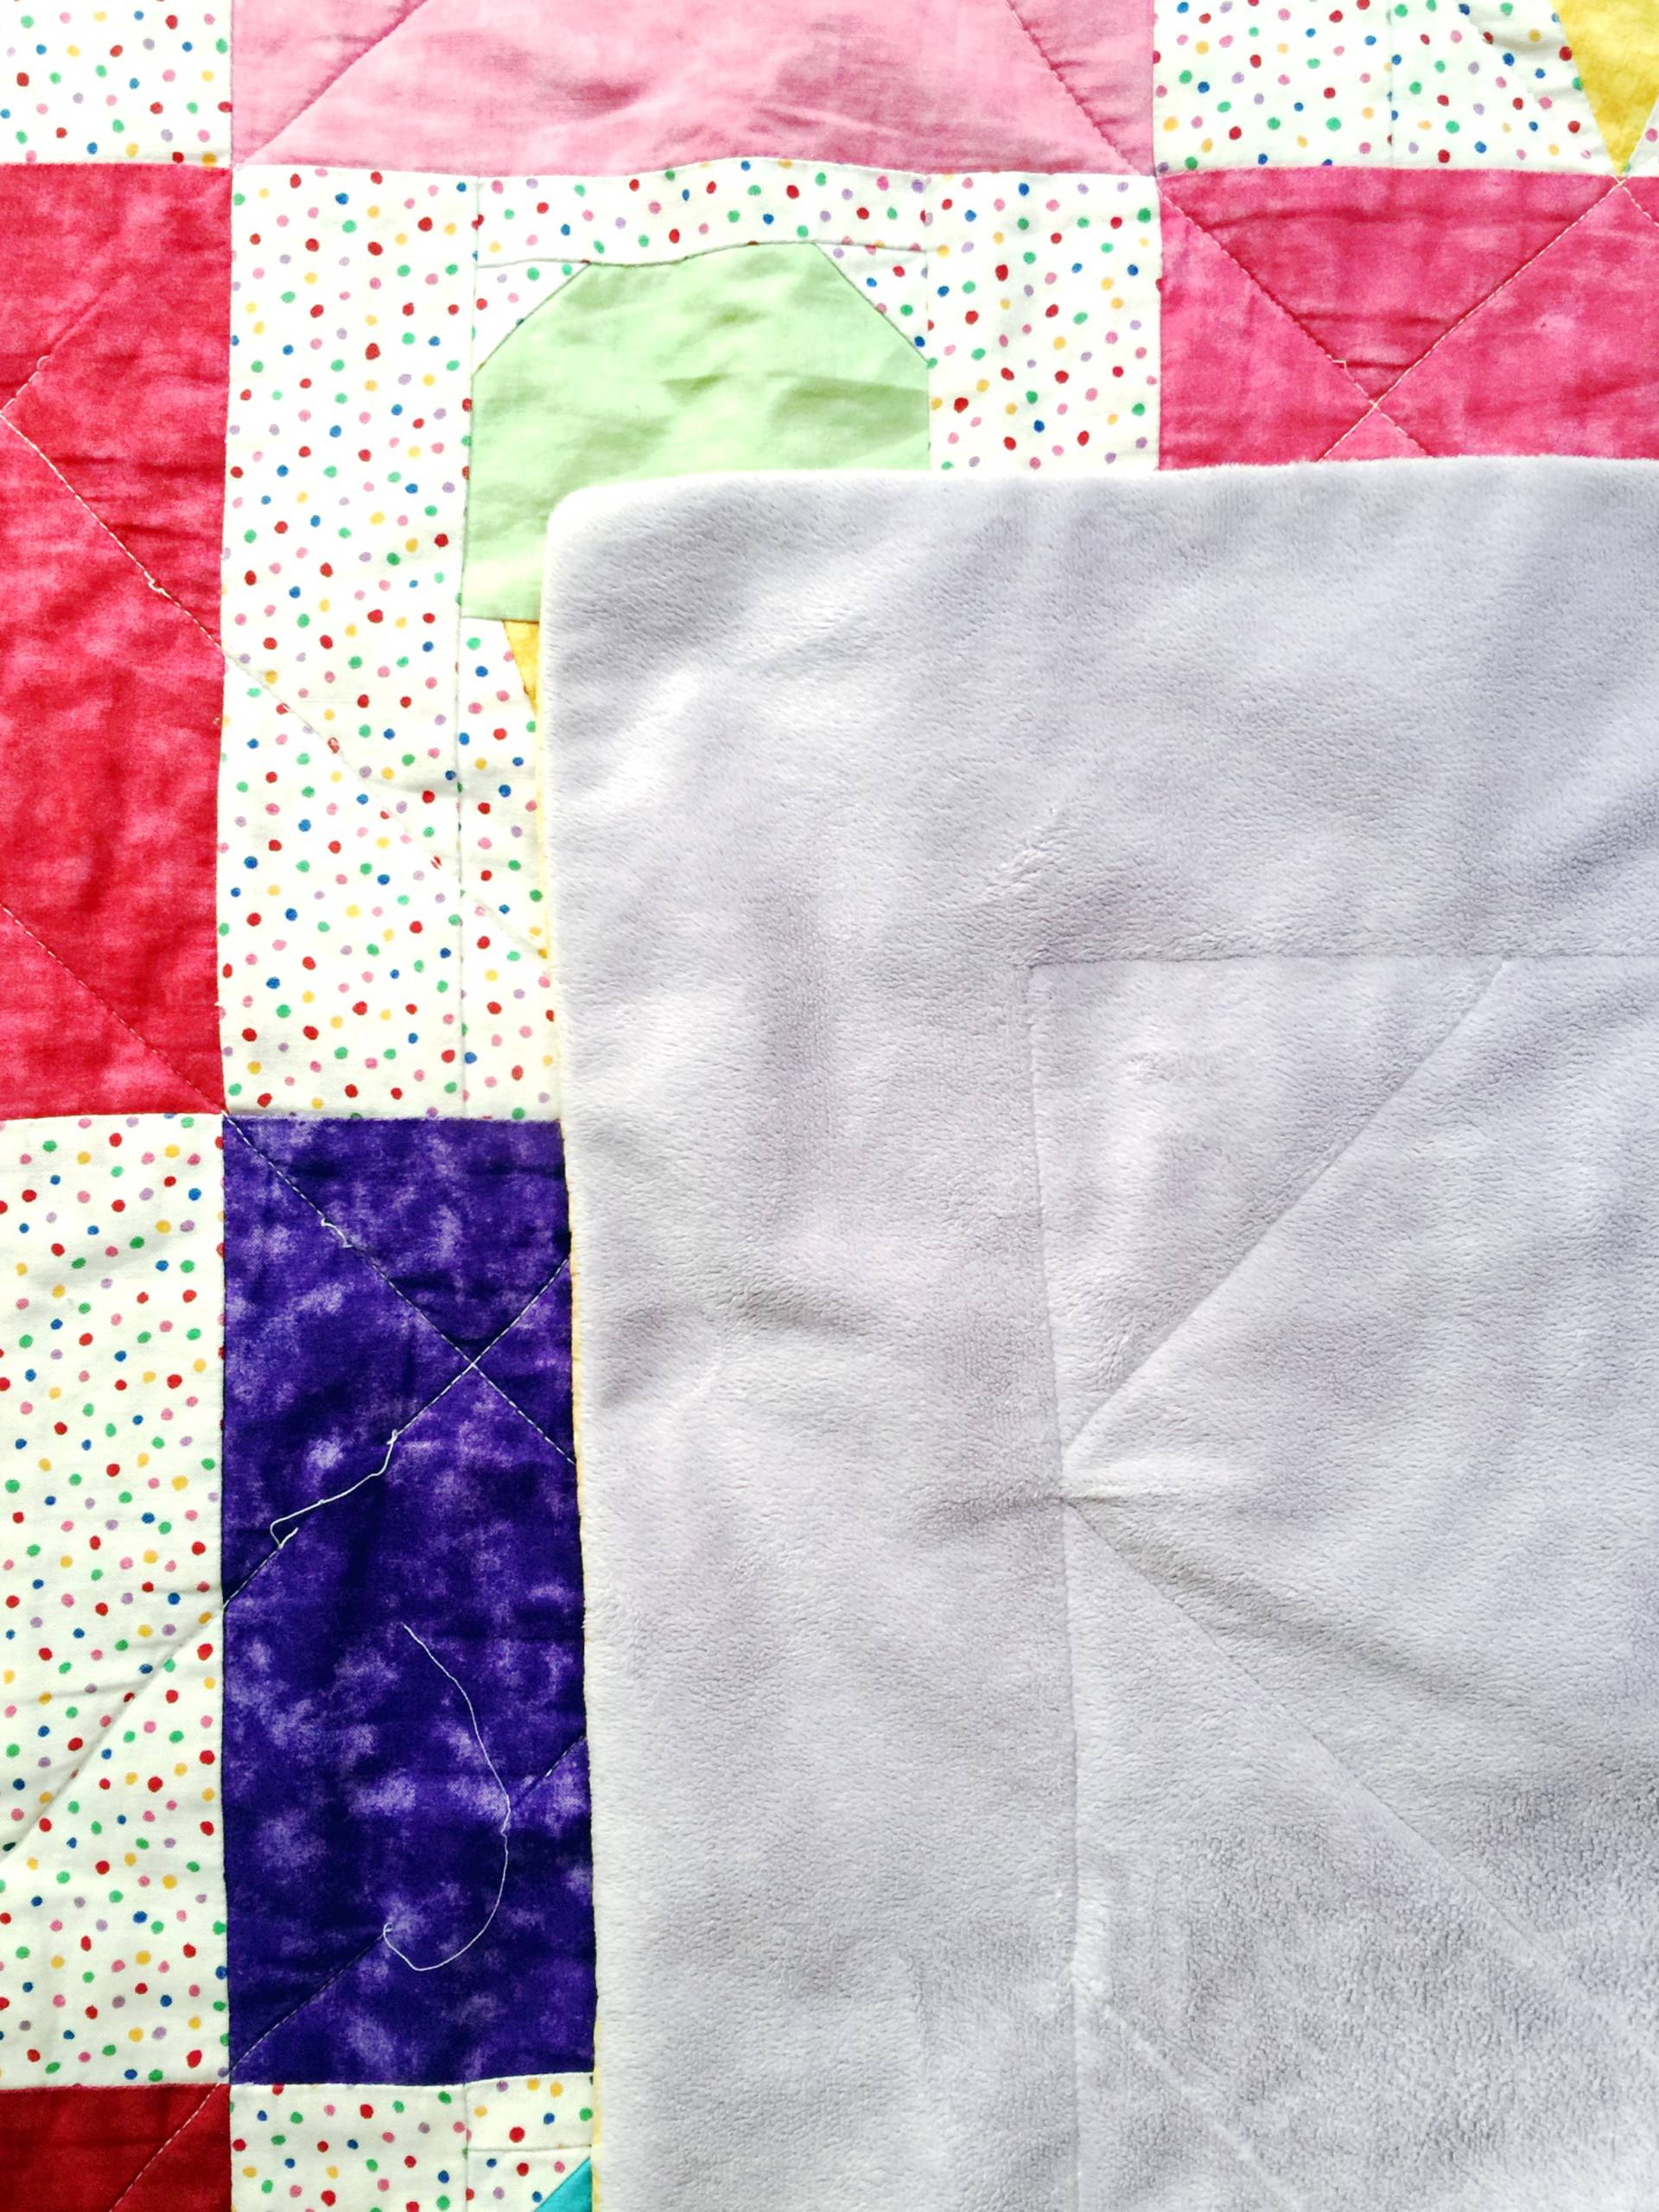 The minky backing on this fun quilt is one of my favorite things!